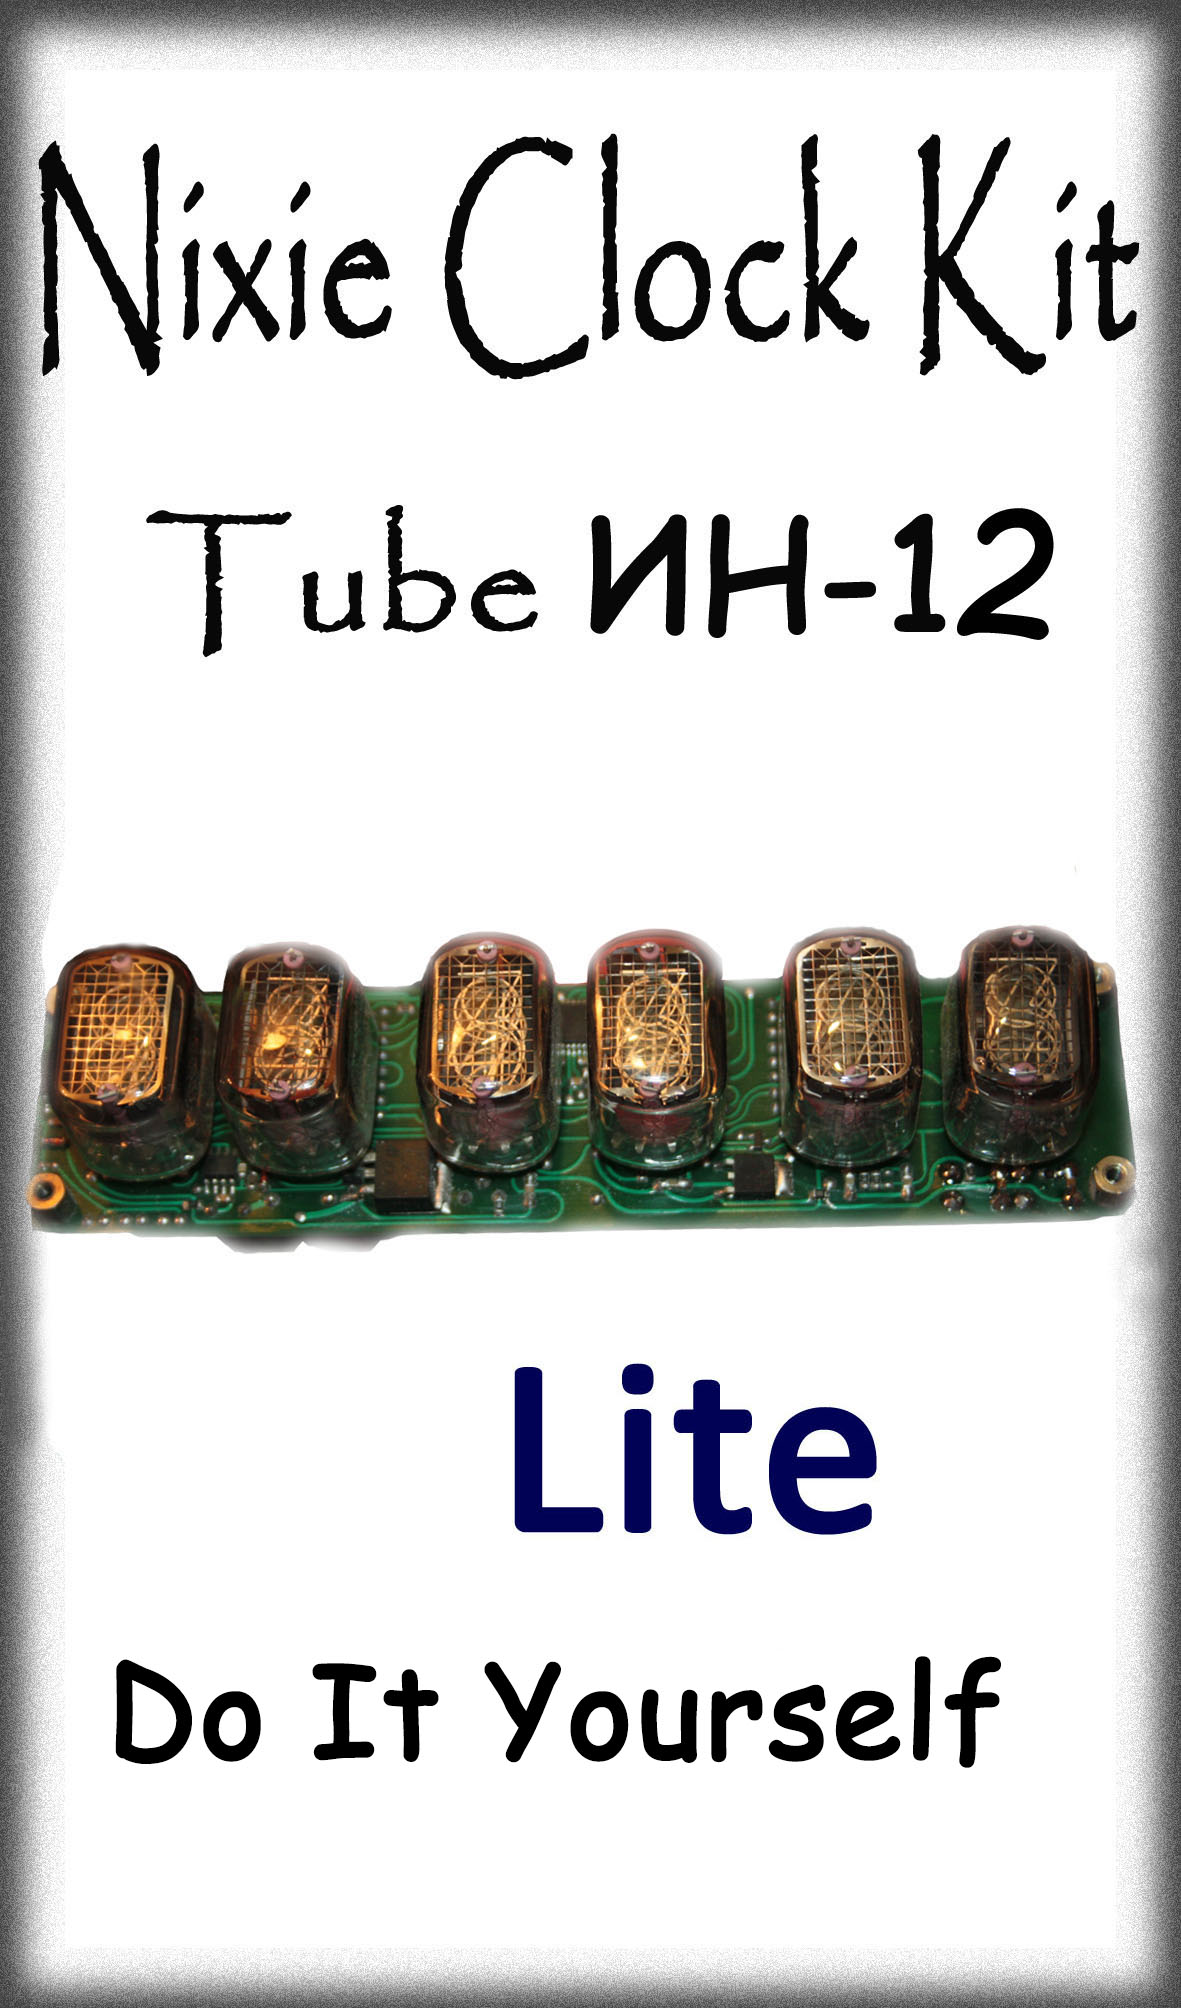 Nixie Clock IN-12 Lite